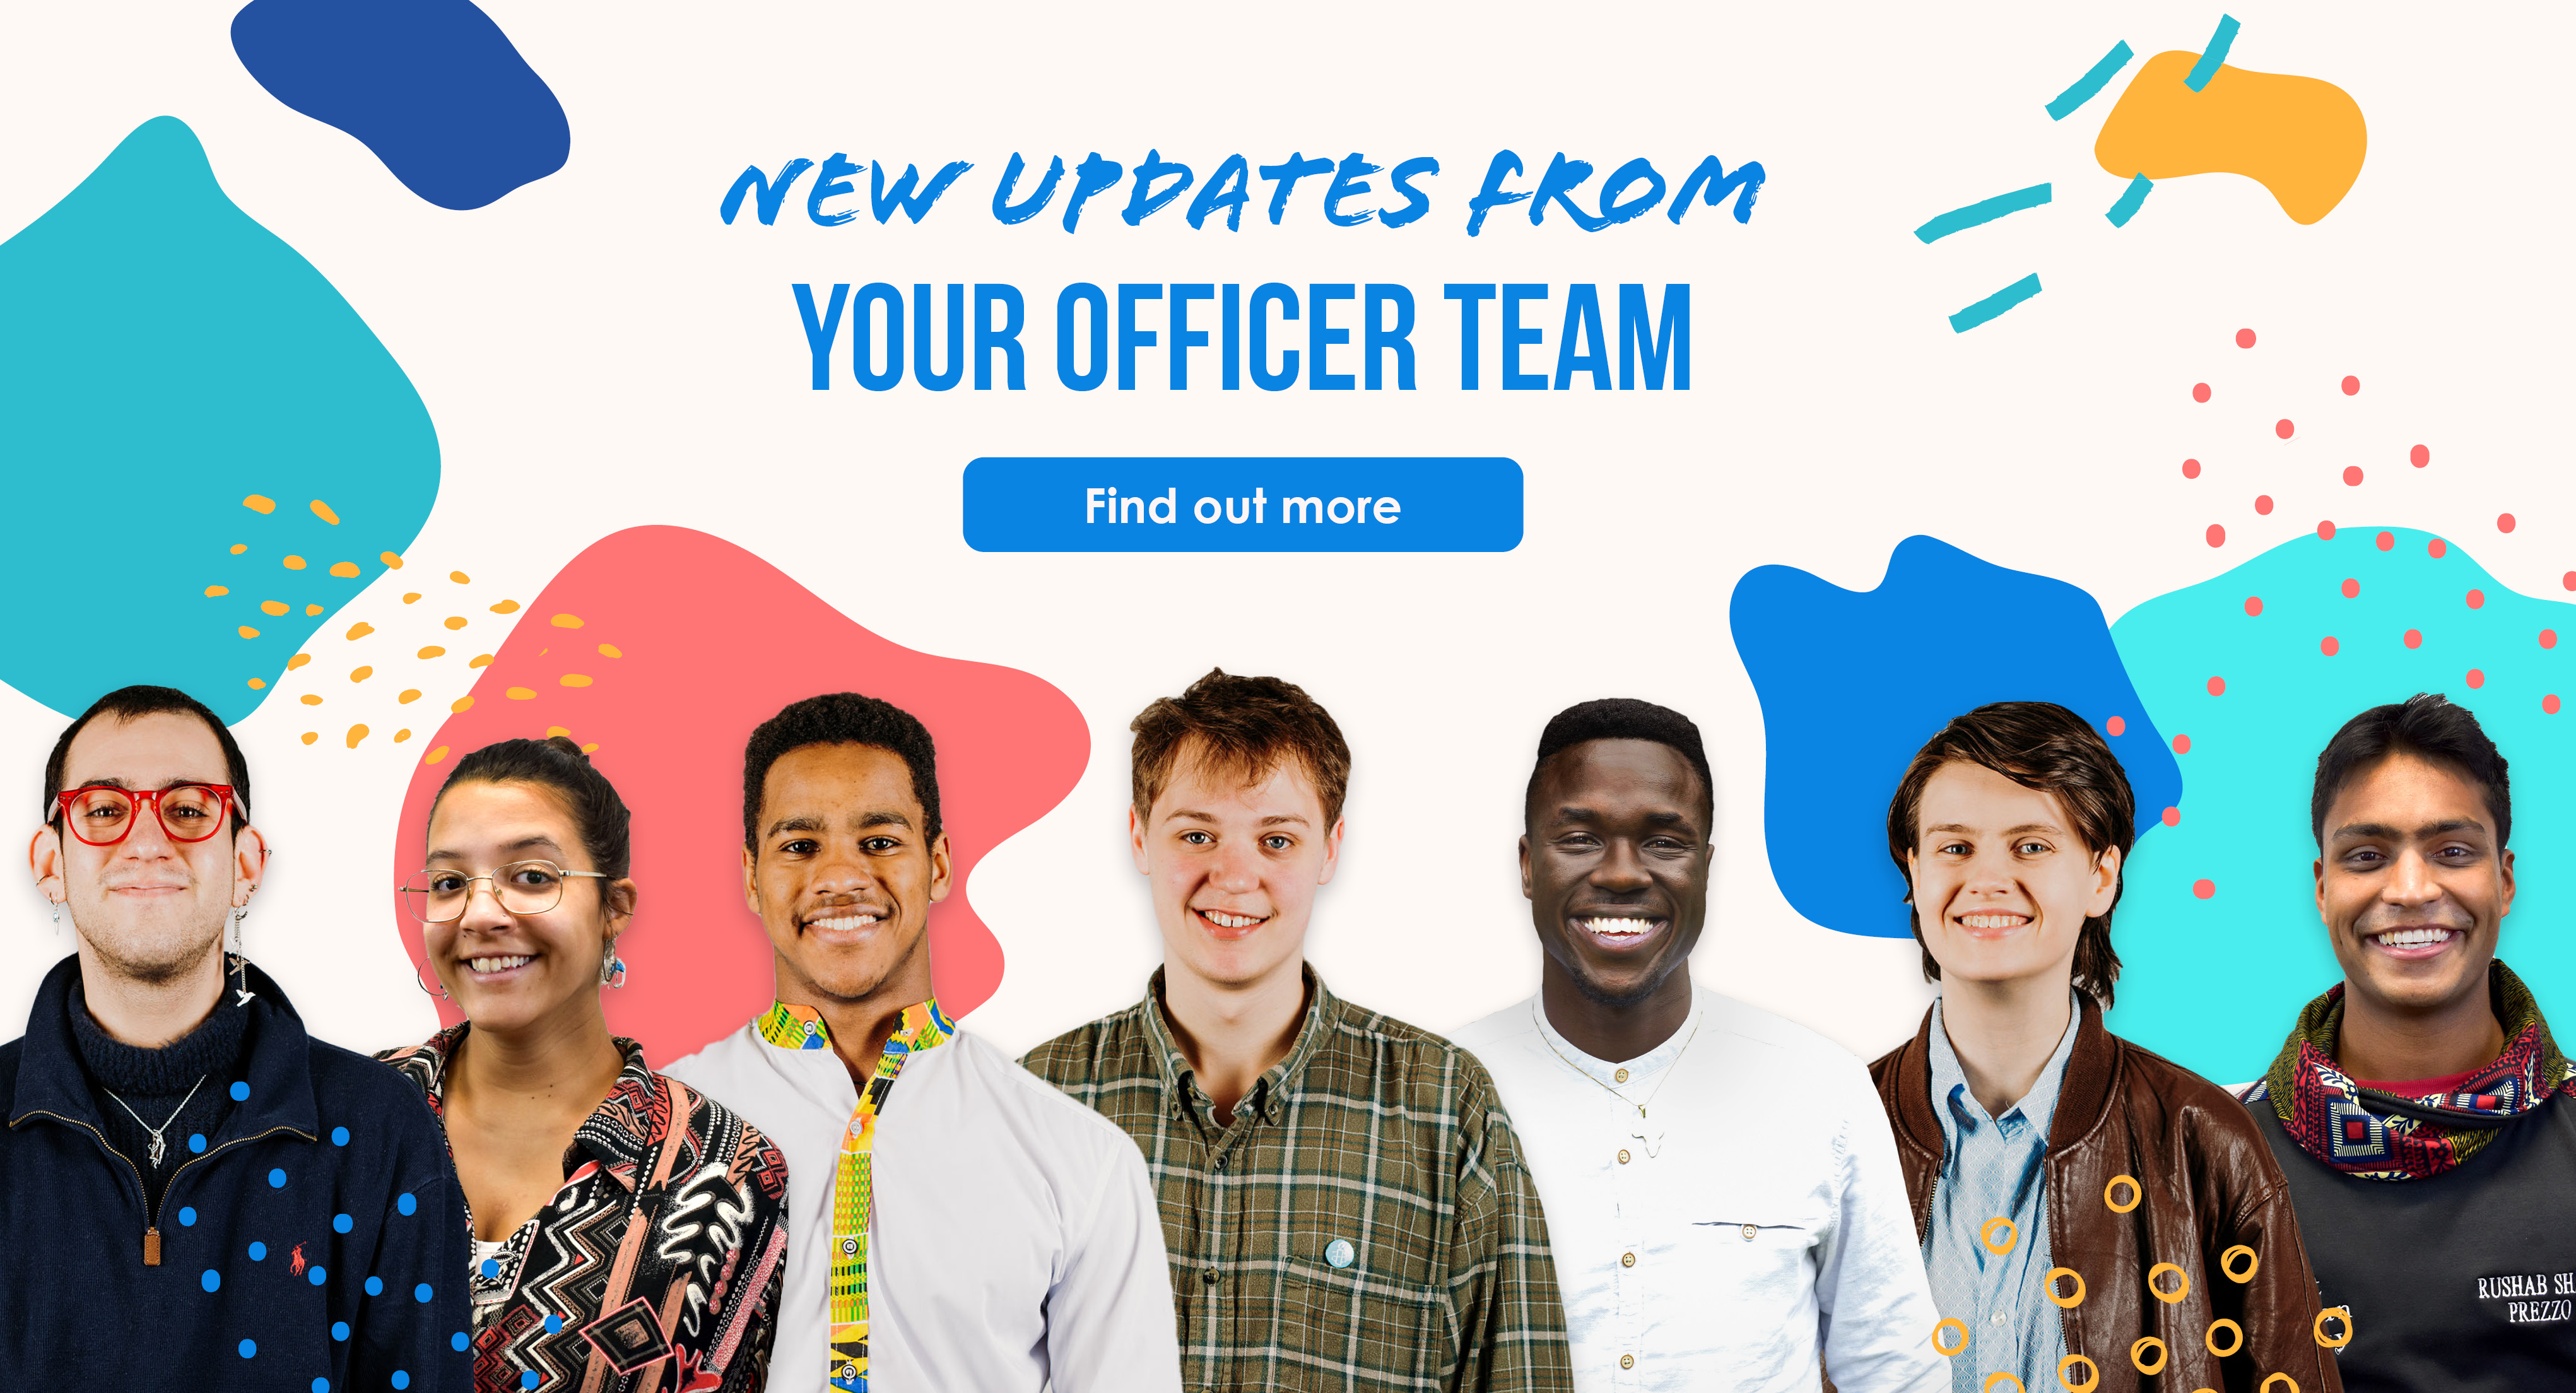 Updates from your officer team. Find out more.